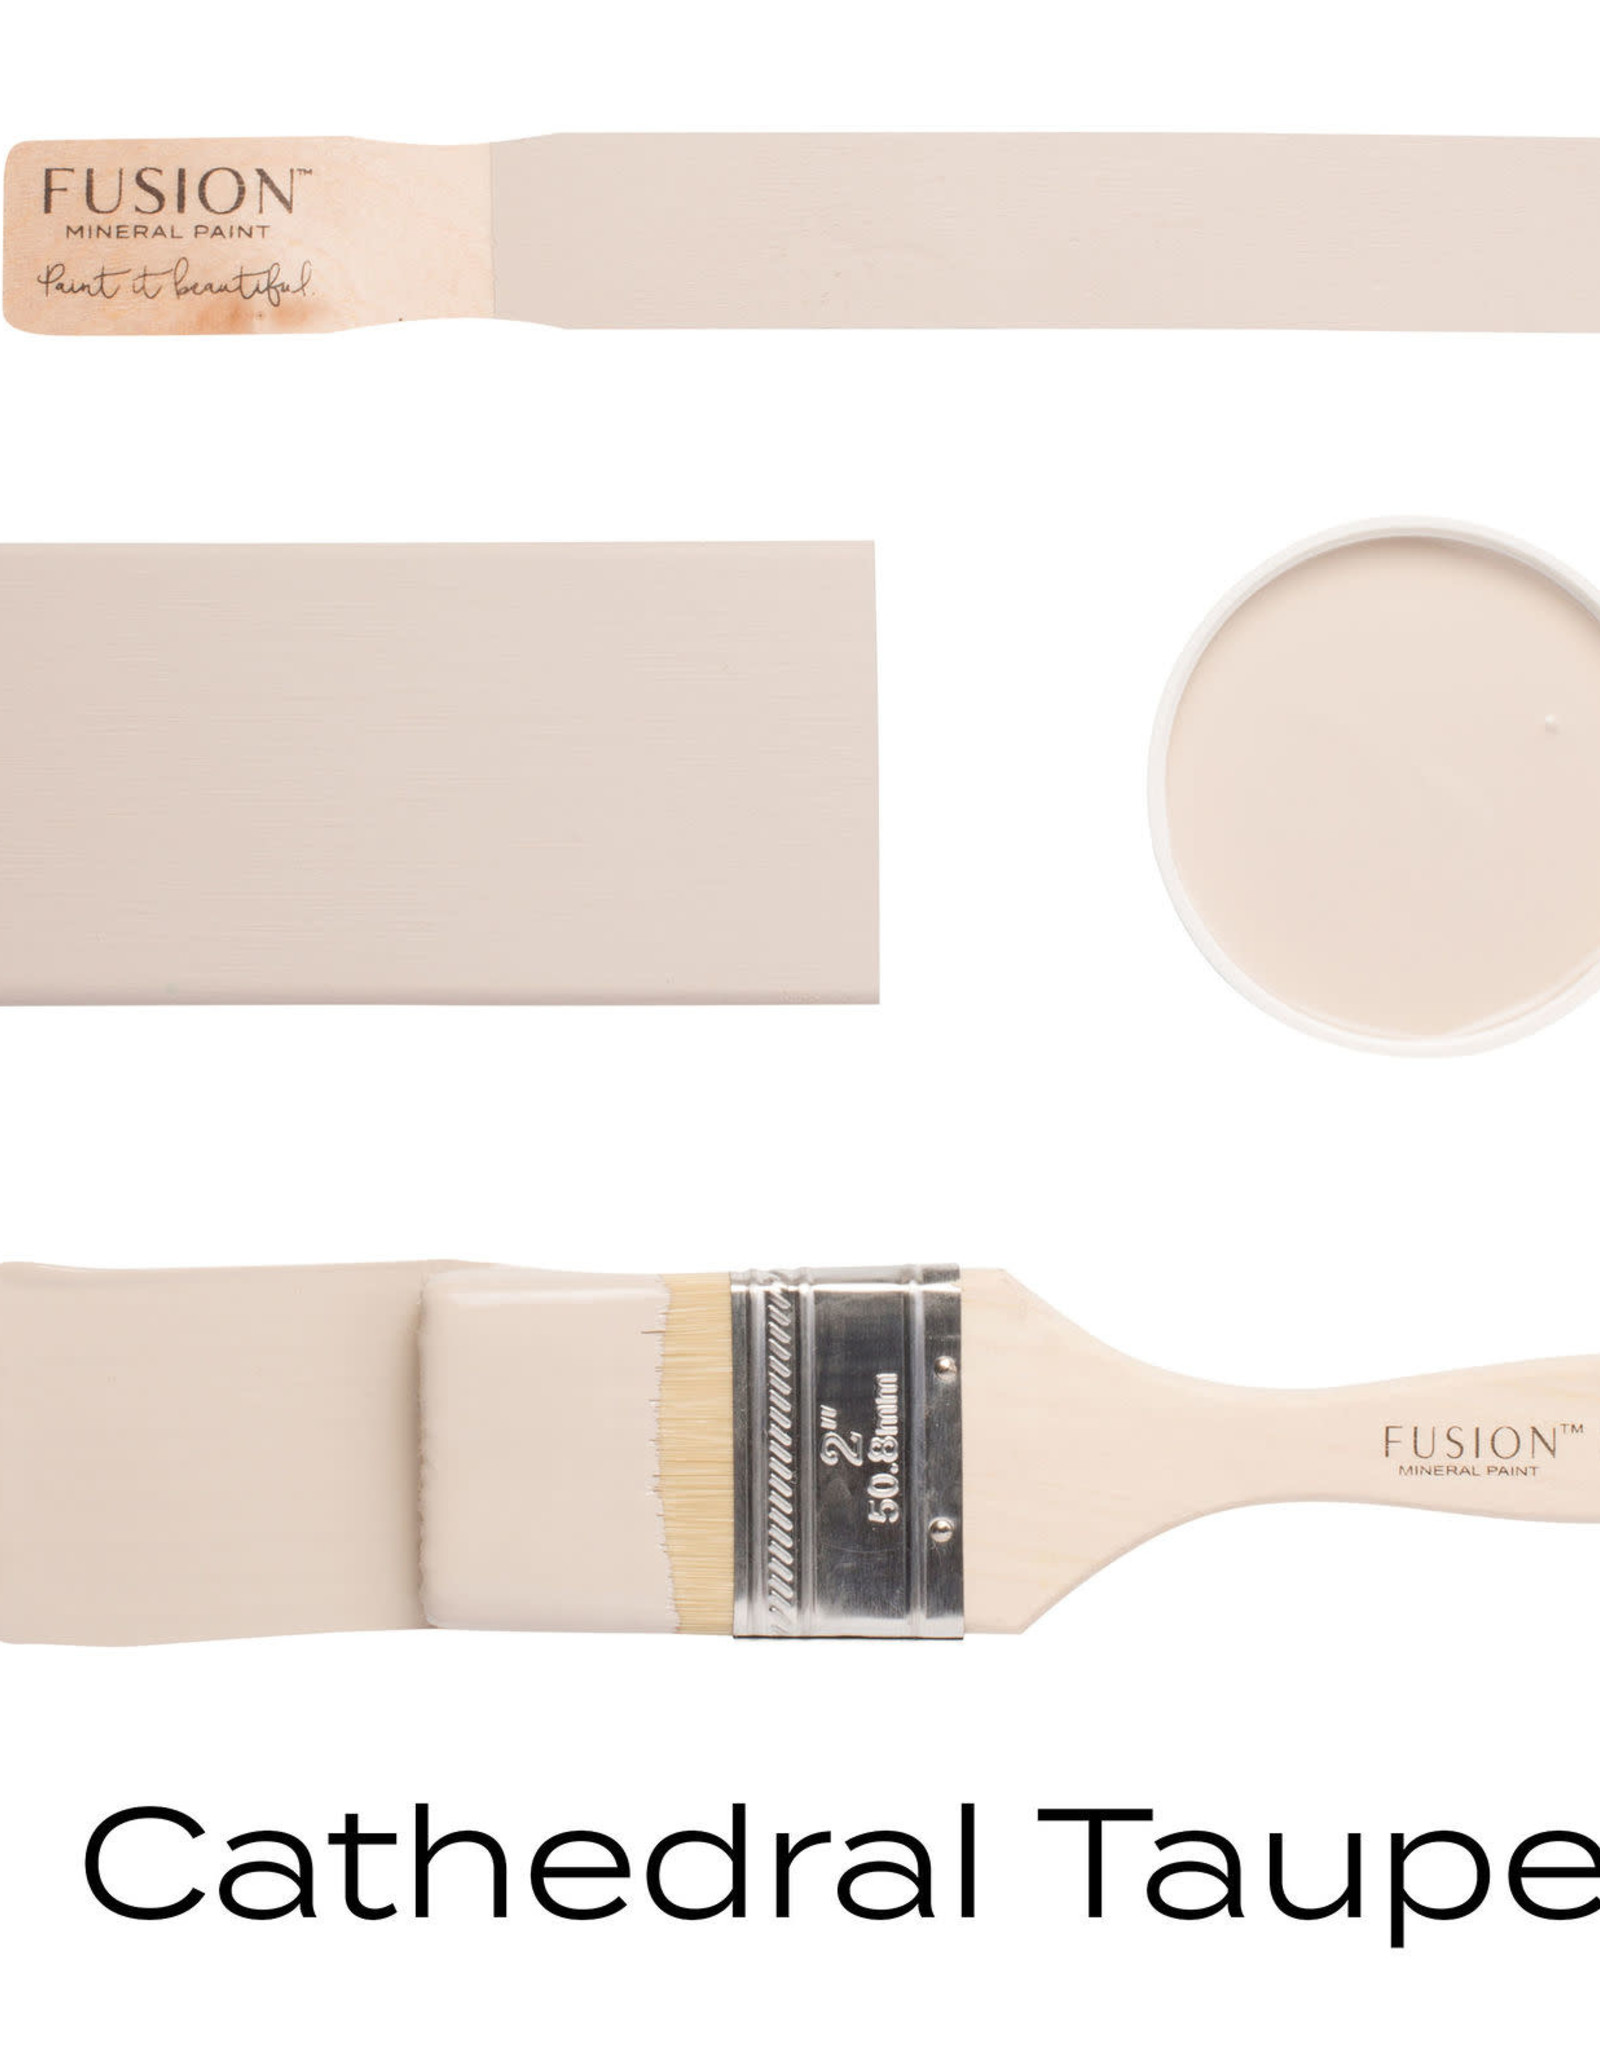 Fusion Mineral Paint Fusion Mineral Paint - Cathedral Taupe 37ml